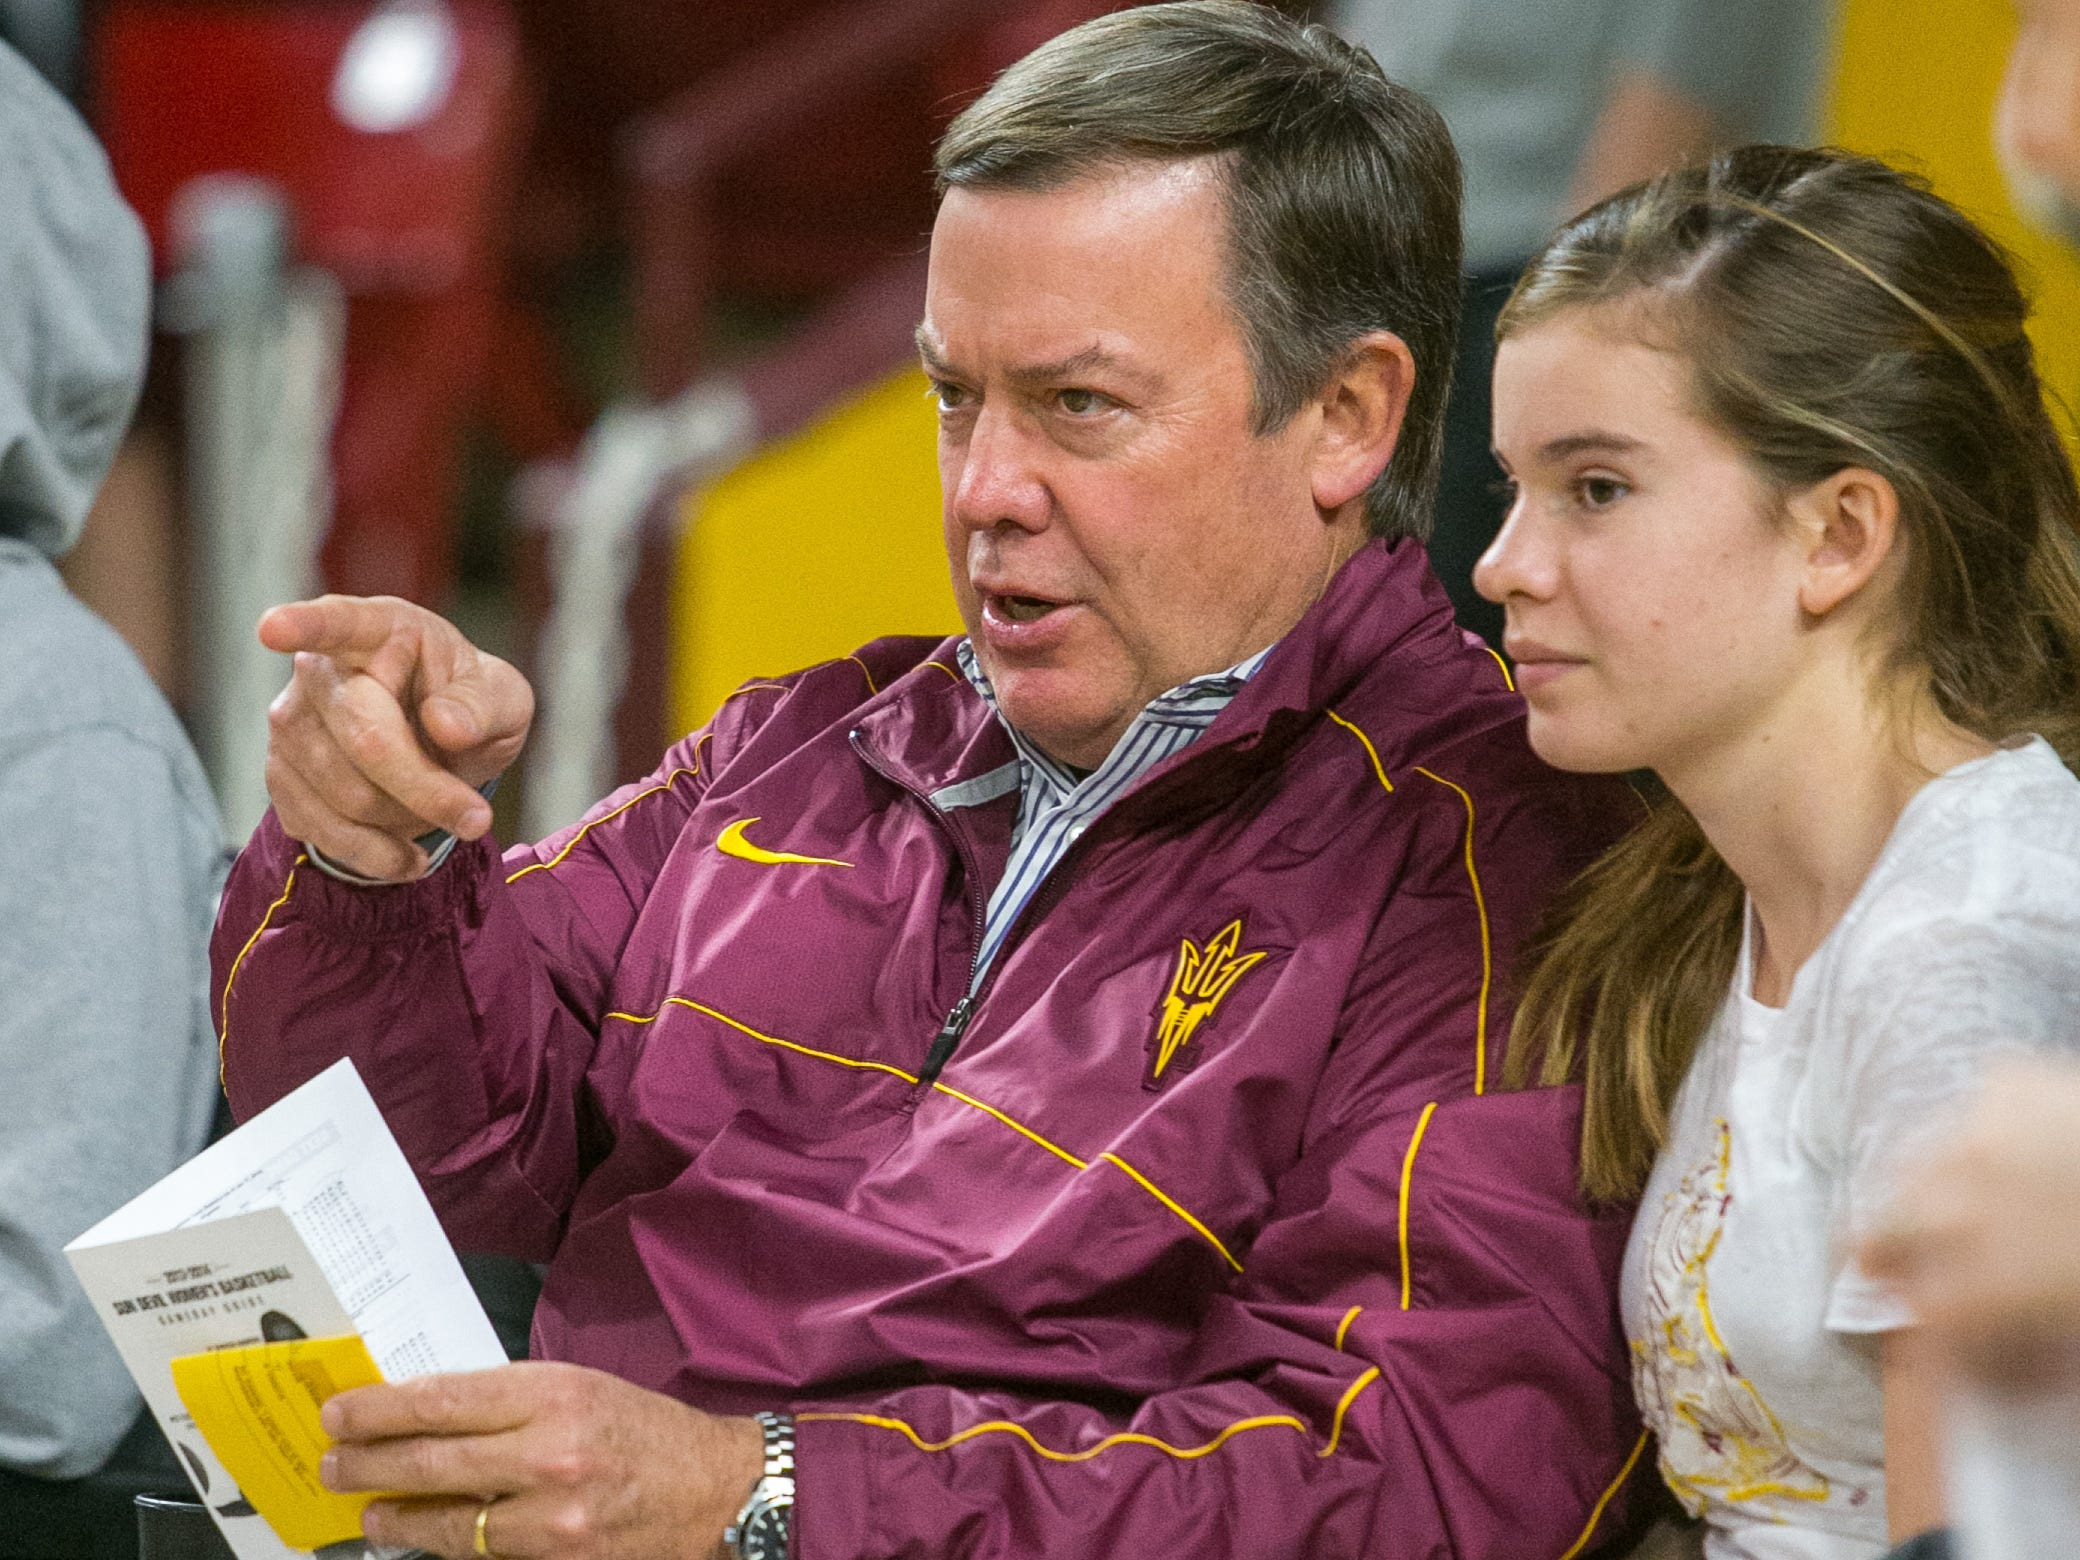 ASU President Michael Crow attends a 2014 NCAA women's basketball game against Stanford at Tempe's Wells Fargo Arena.